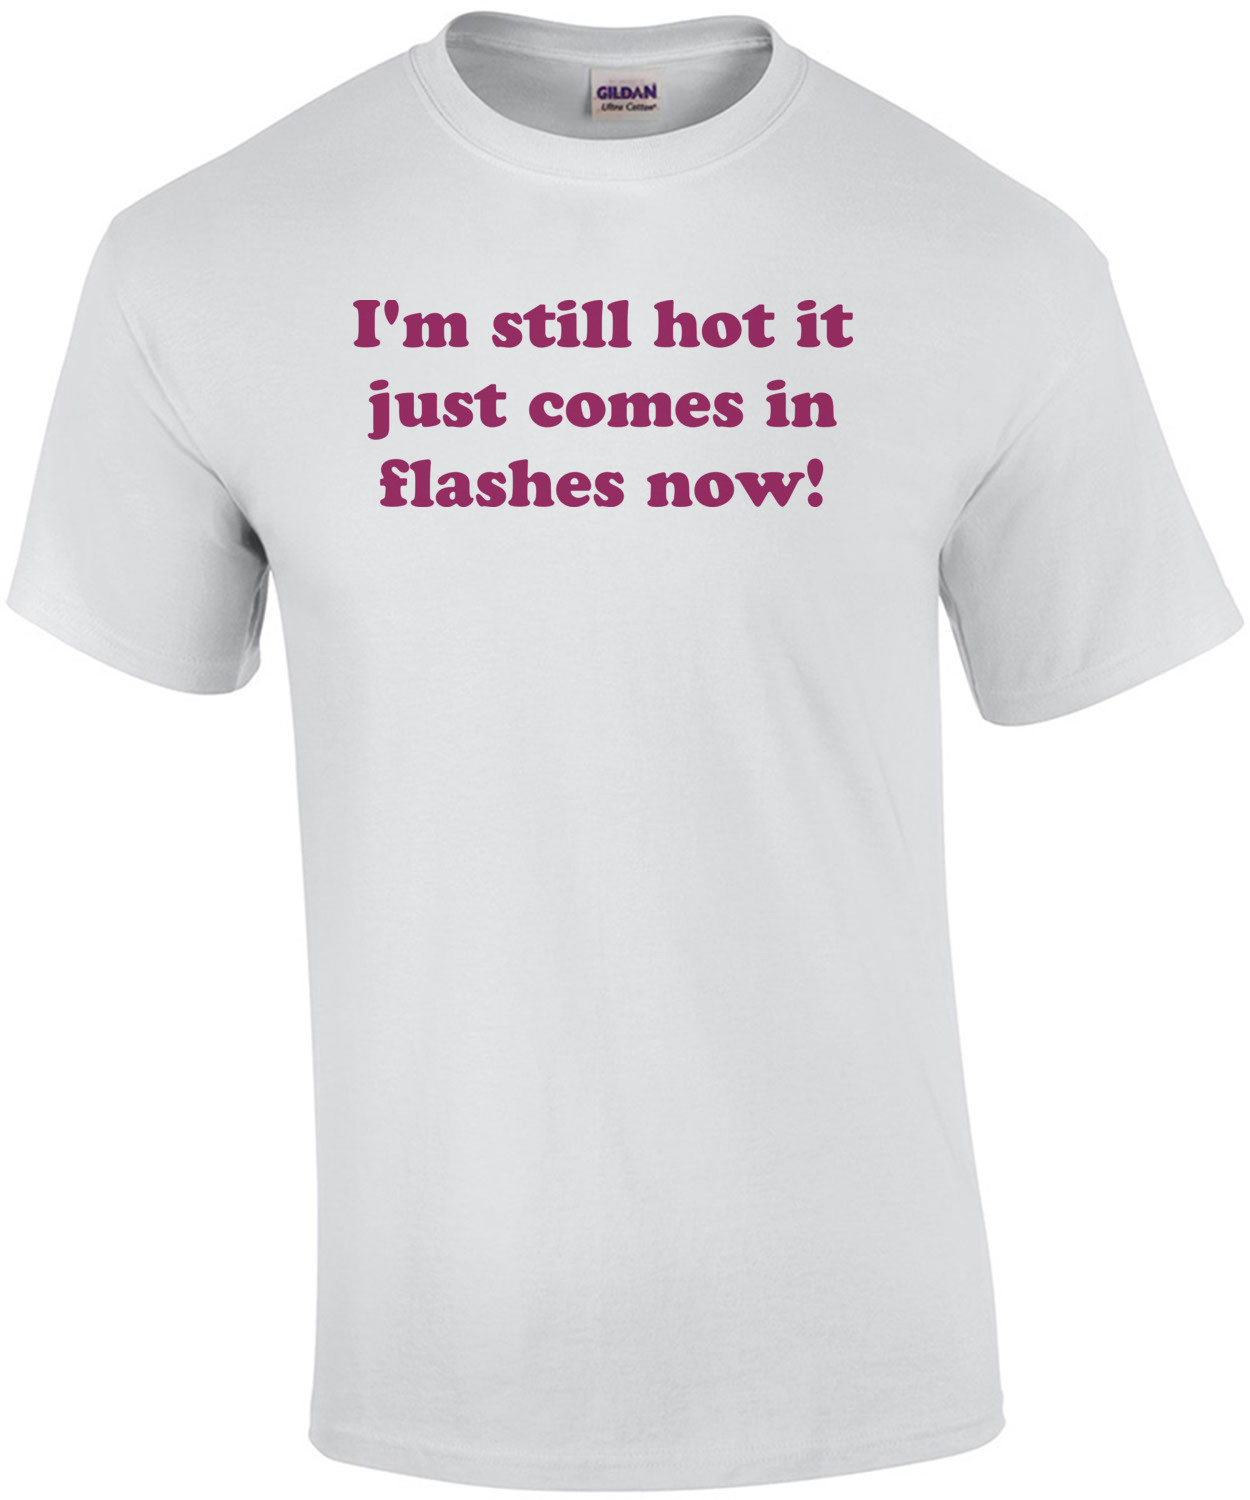 I'm still hot it just comes in flashes now! Shirt